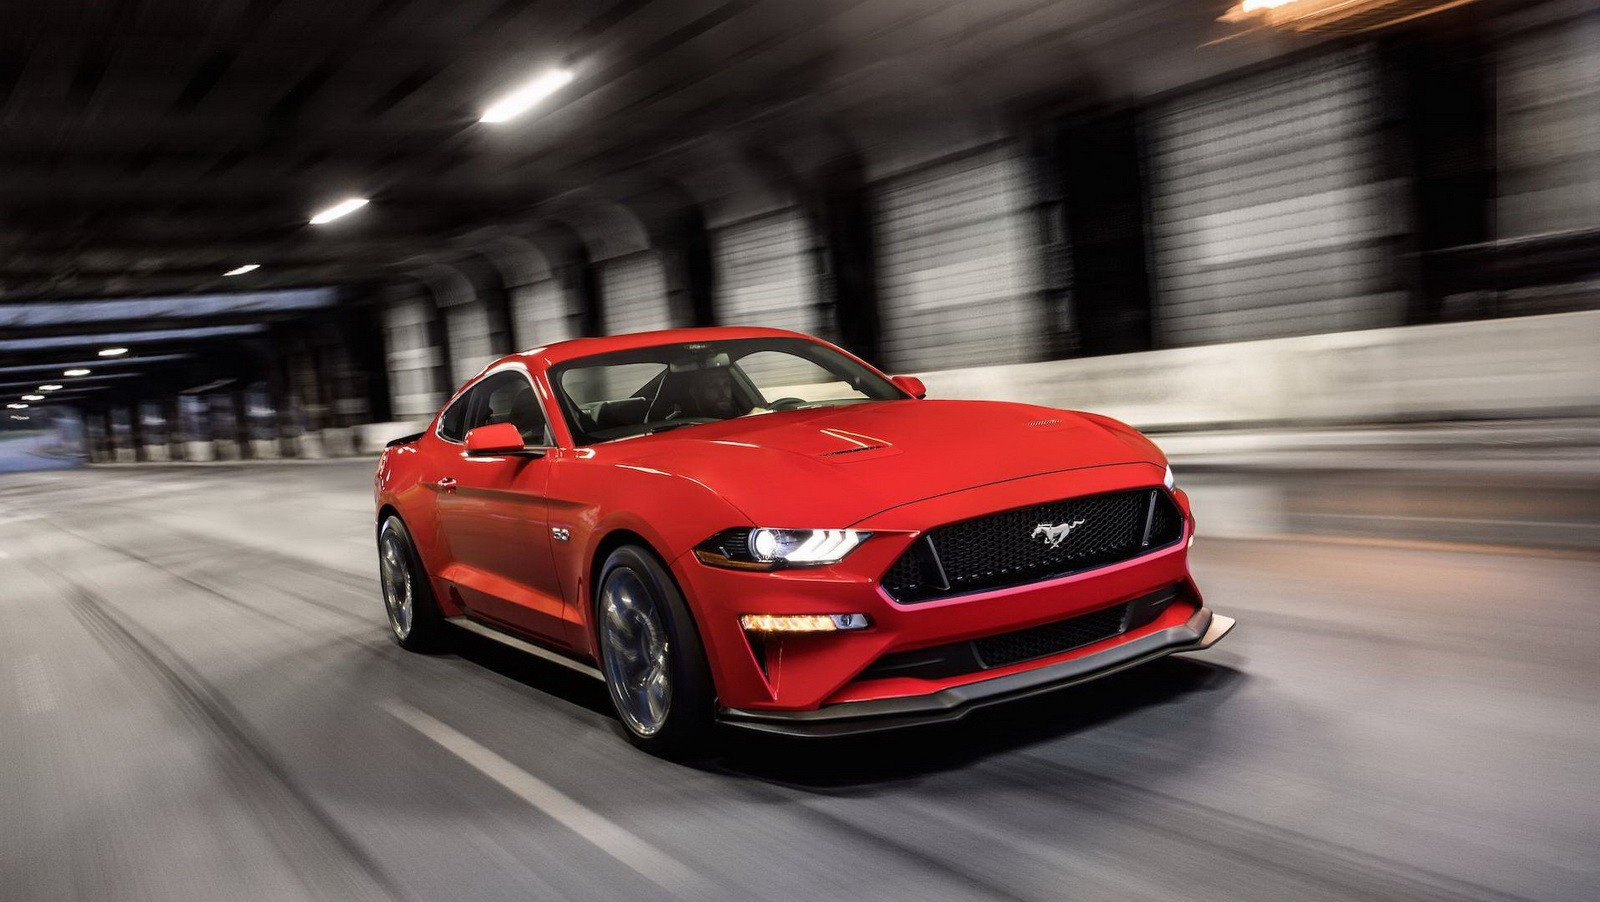 2018 Ford Mustang Gt Features Upgraded Mt82 Manual